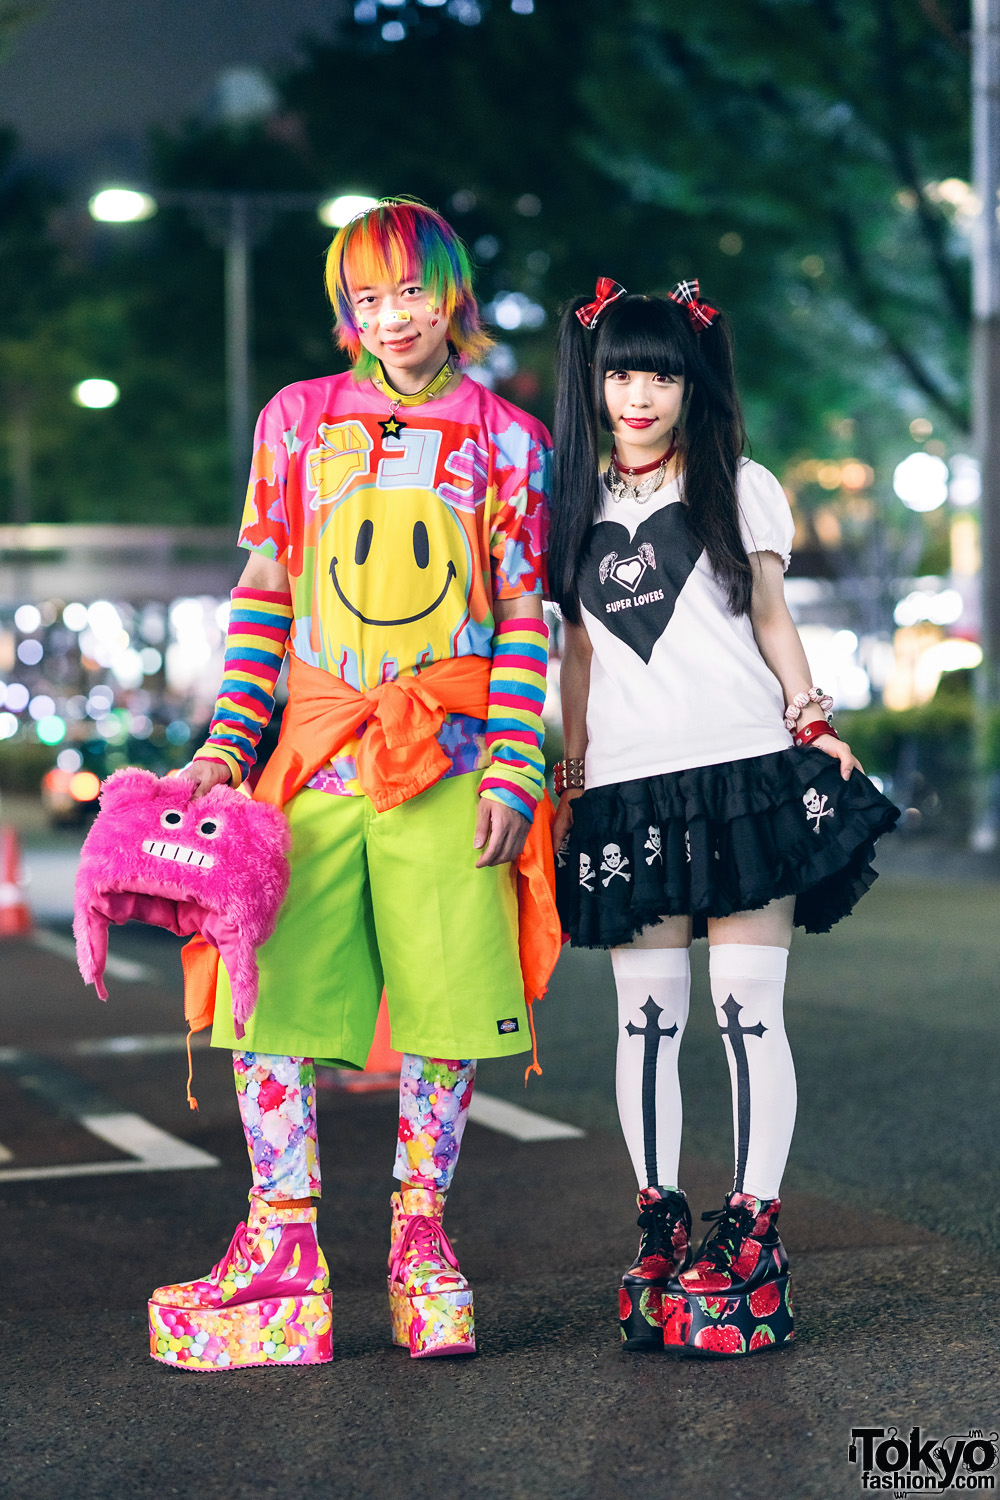 Harajuku Kawaii & Gothic Street Styles w/ Rainbow Hair, Fuzzy Monster Hat, Super Lovers, 6%DokiDoki & ACDC Rag Platform Sneakers